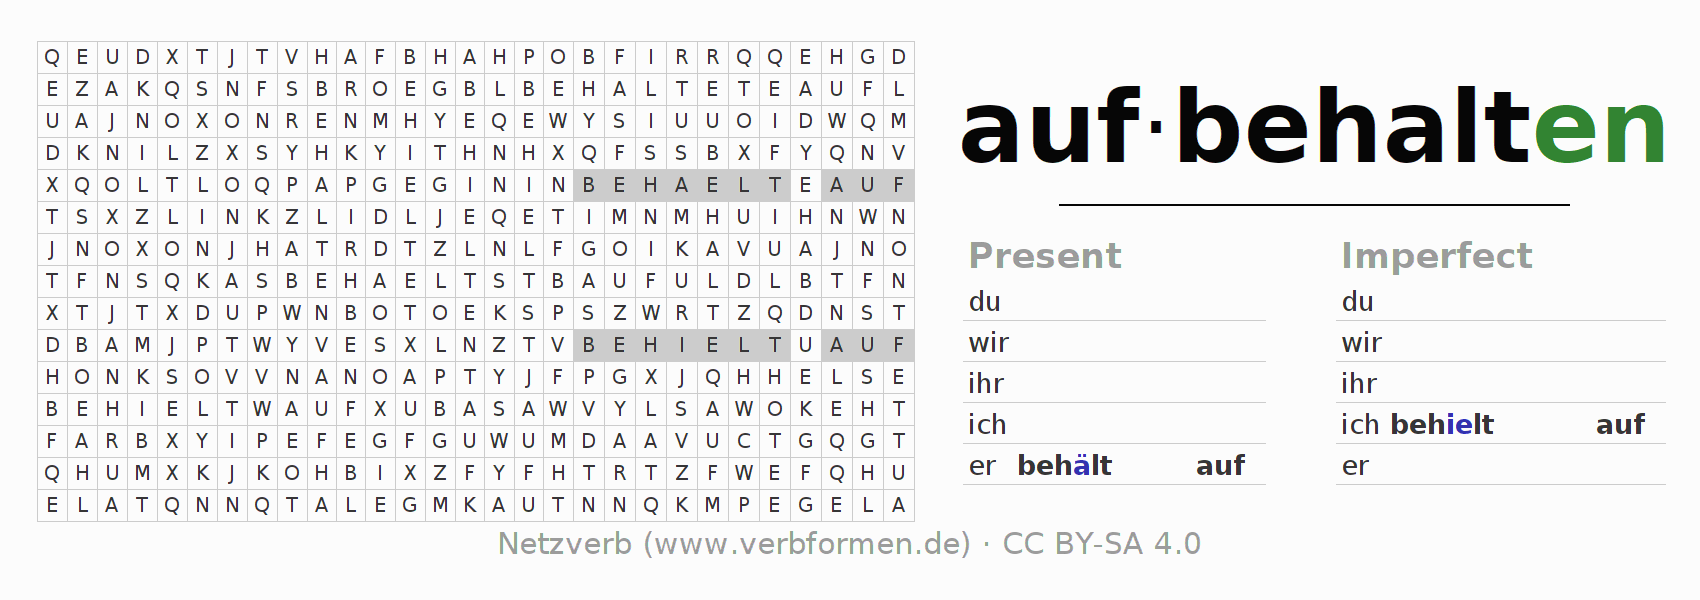 Word search puzzle for the conjugation of the verb aufbehalten